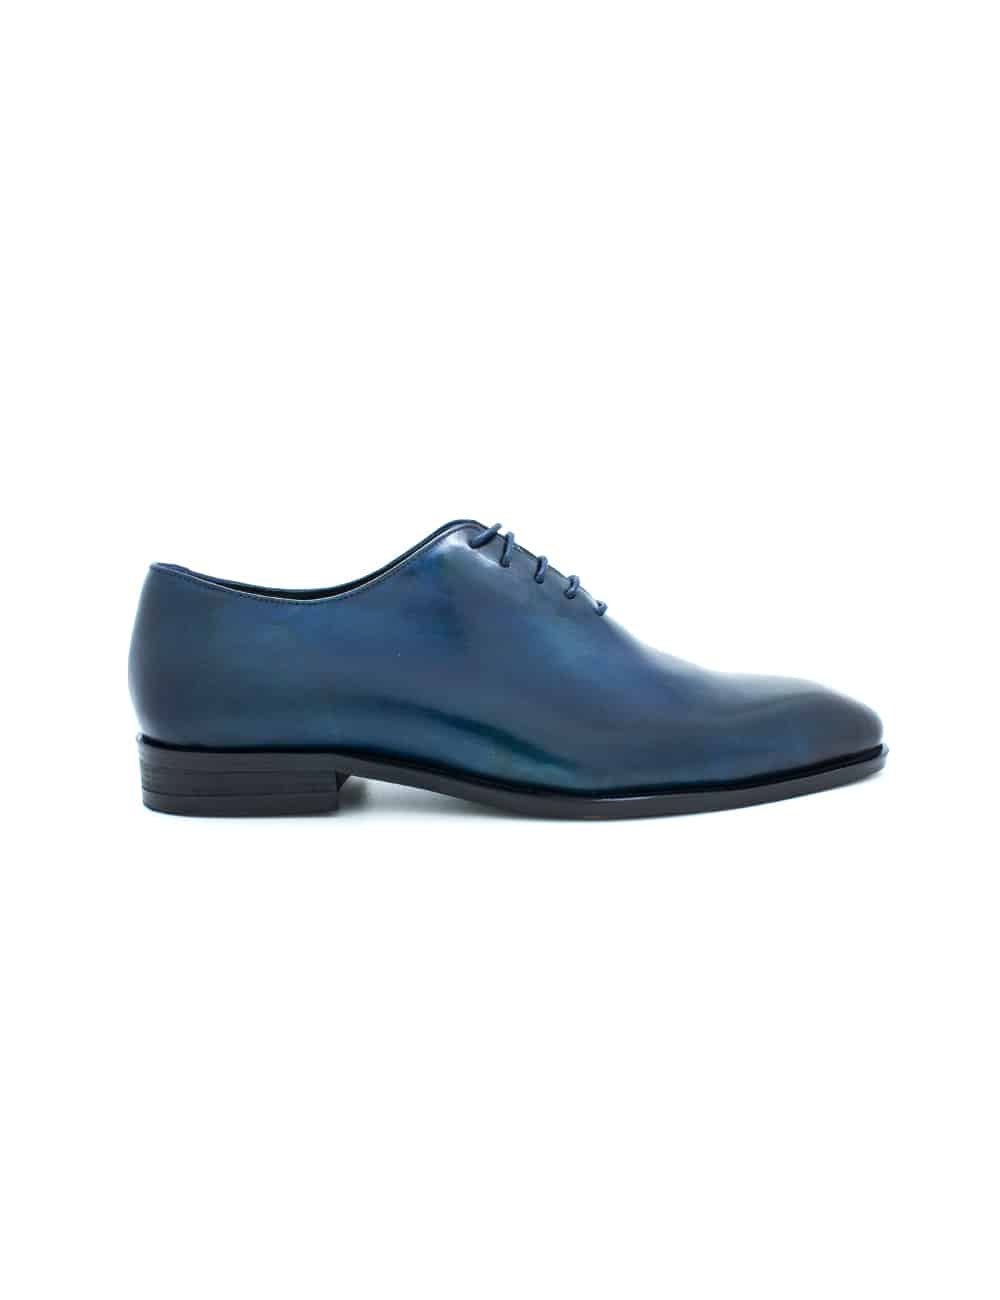 Navy Leather Wholecut Oxford F18A5.3